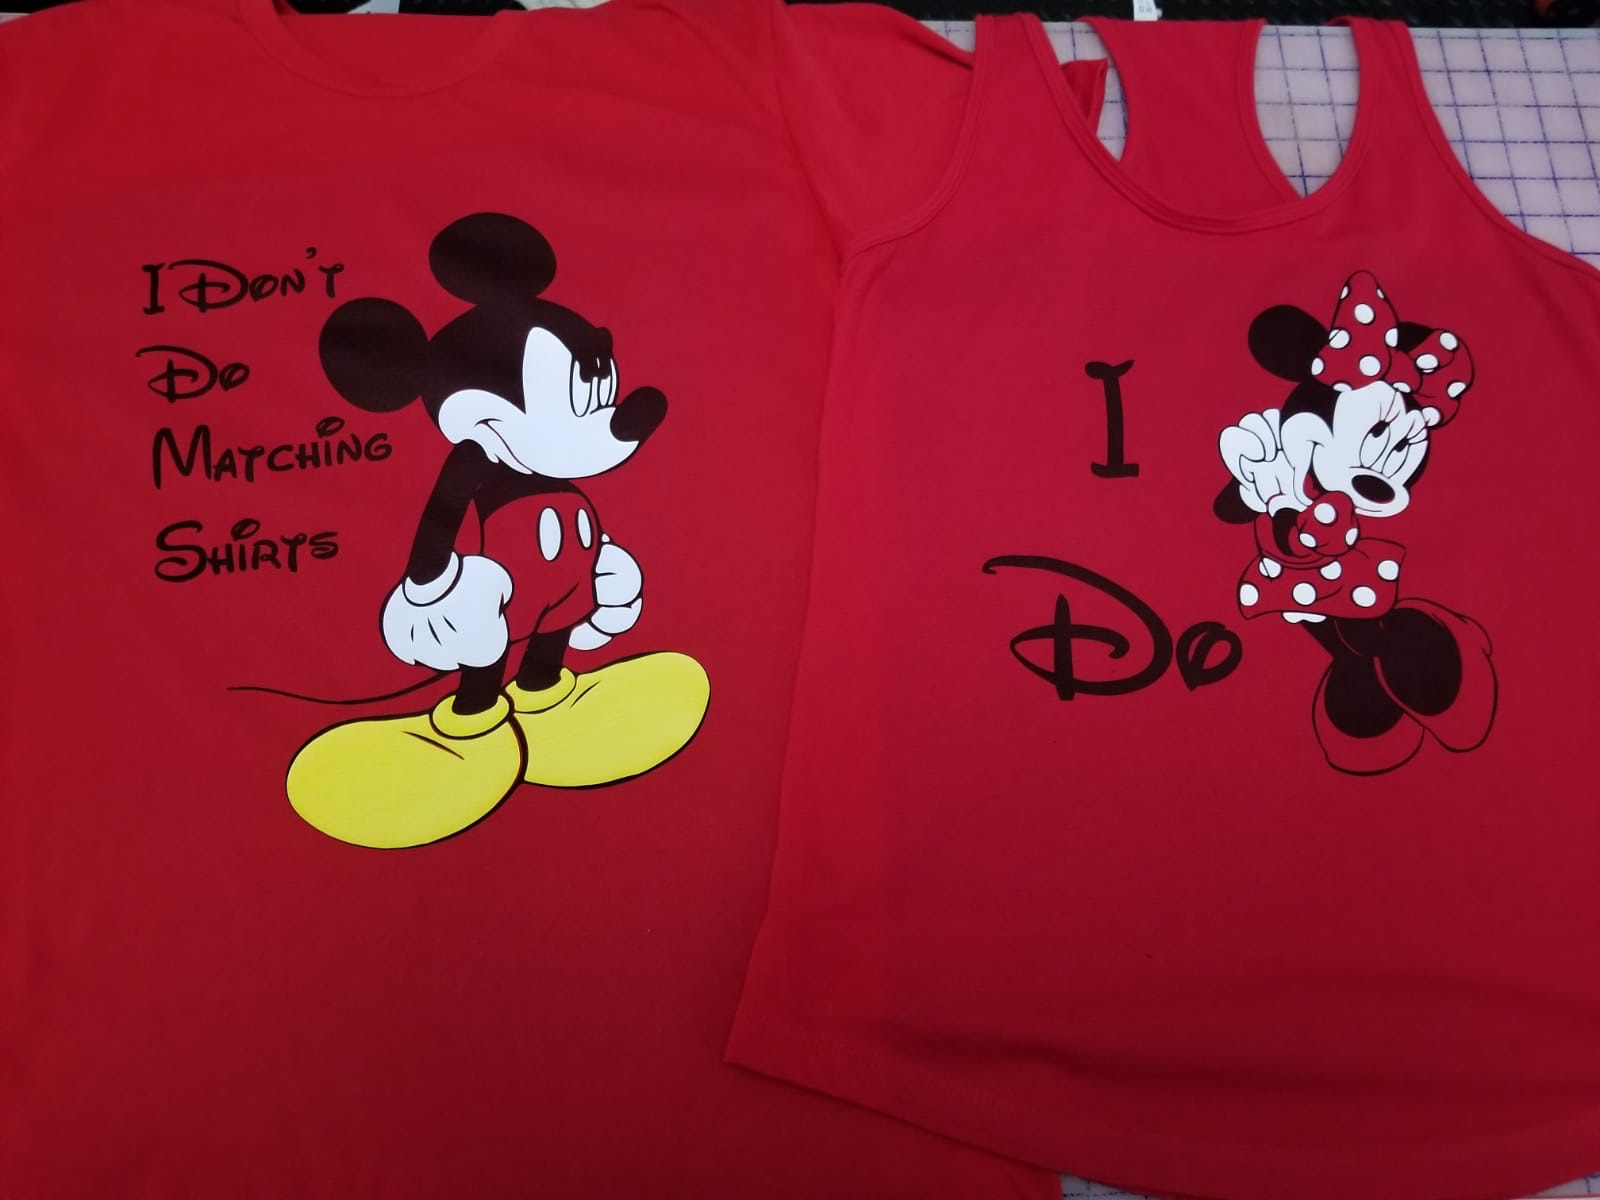 57903d3b40 Funny matching Disney shirts, I Don't Do Matching Shirts Angry Mickey  Mouse, I do Minnie Mouse